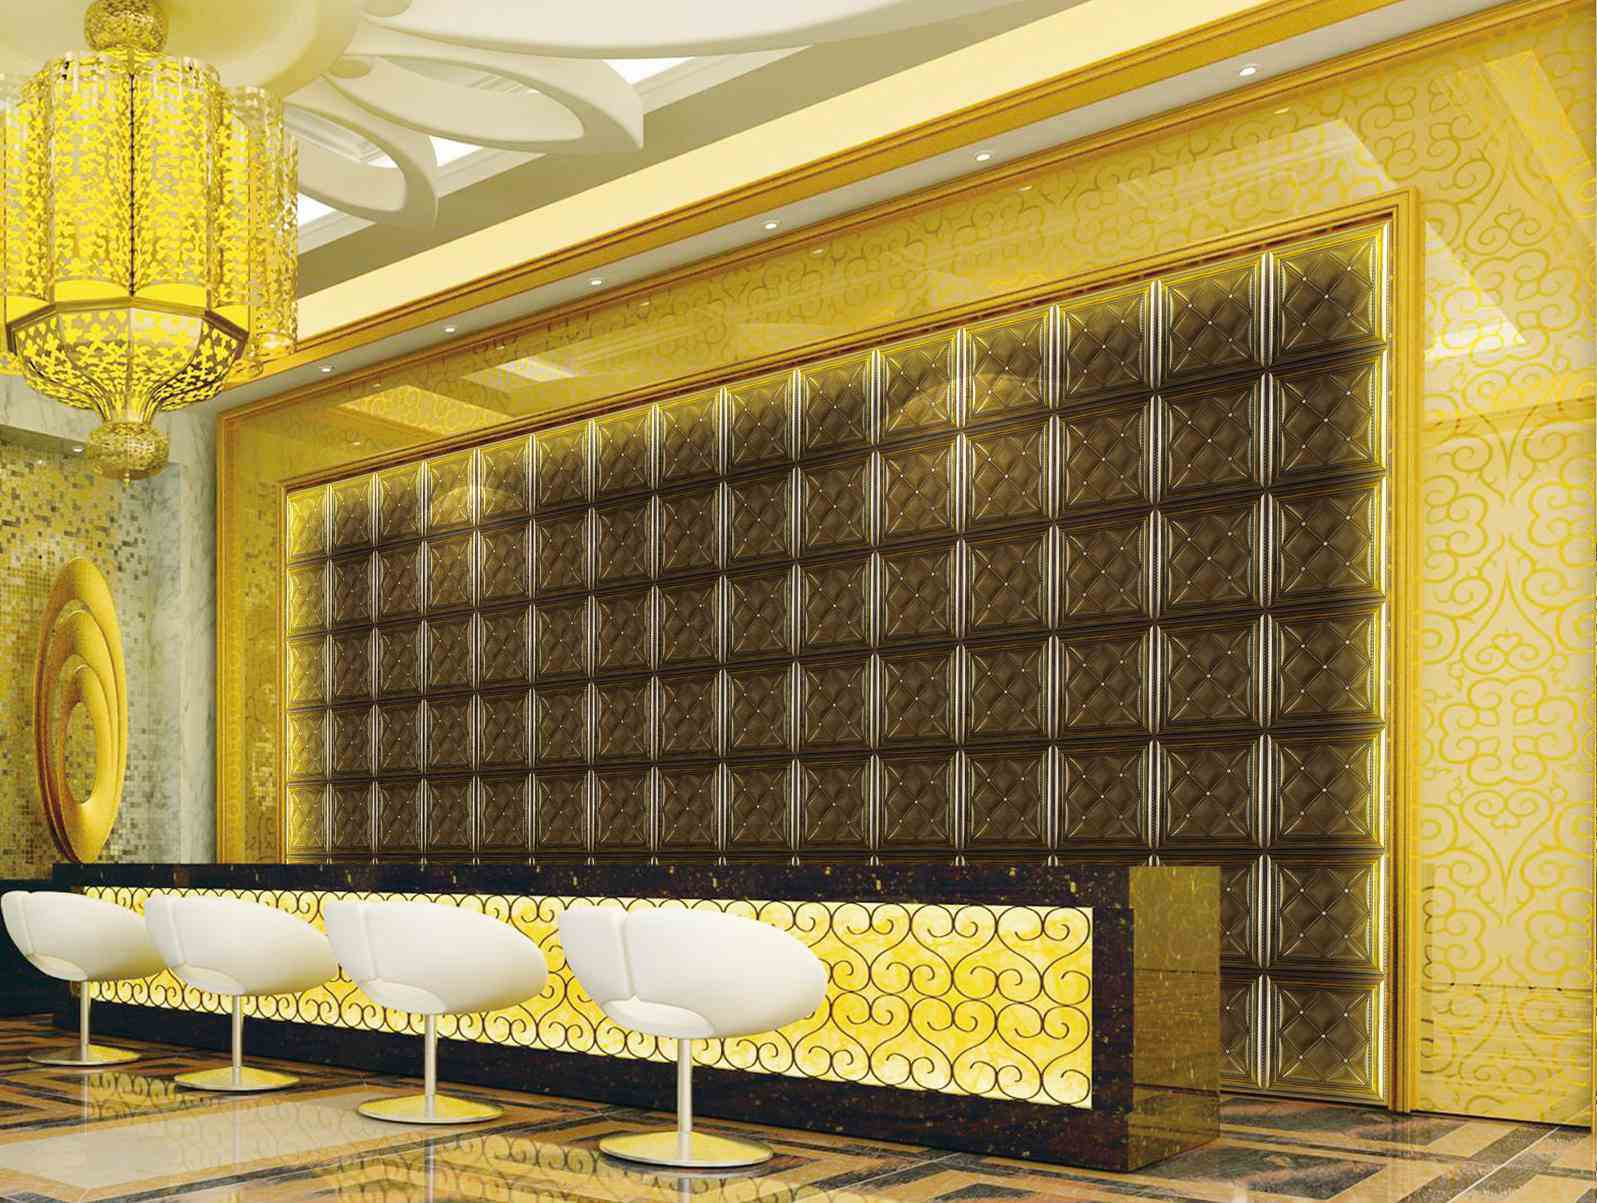 Awesome Heat Resistant Decorative Wall Panels Illustration - Art ...